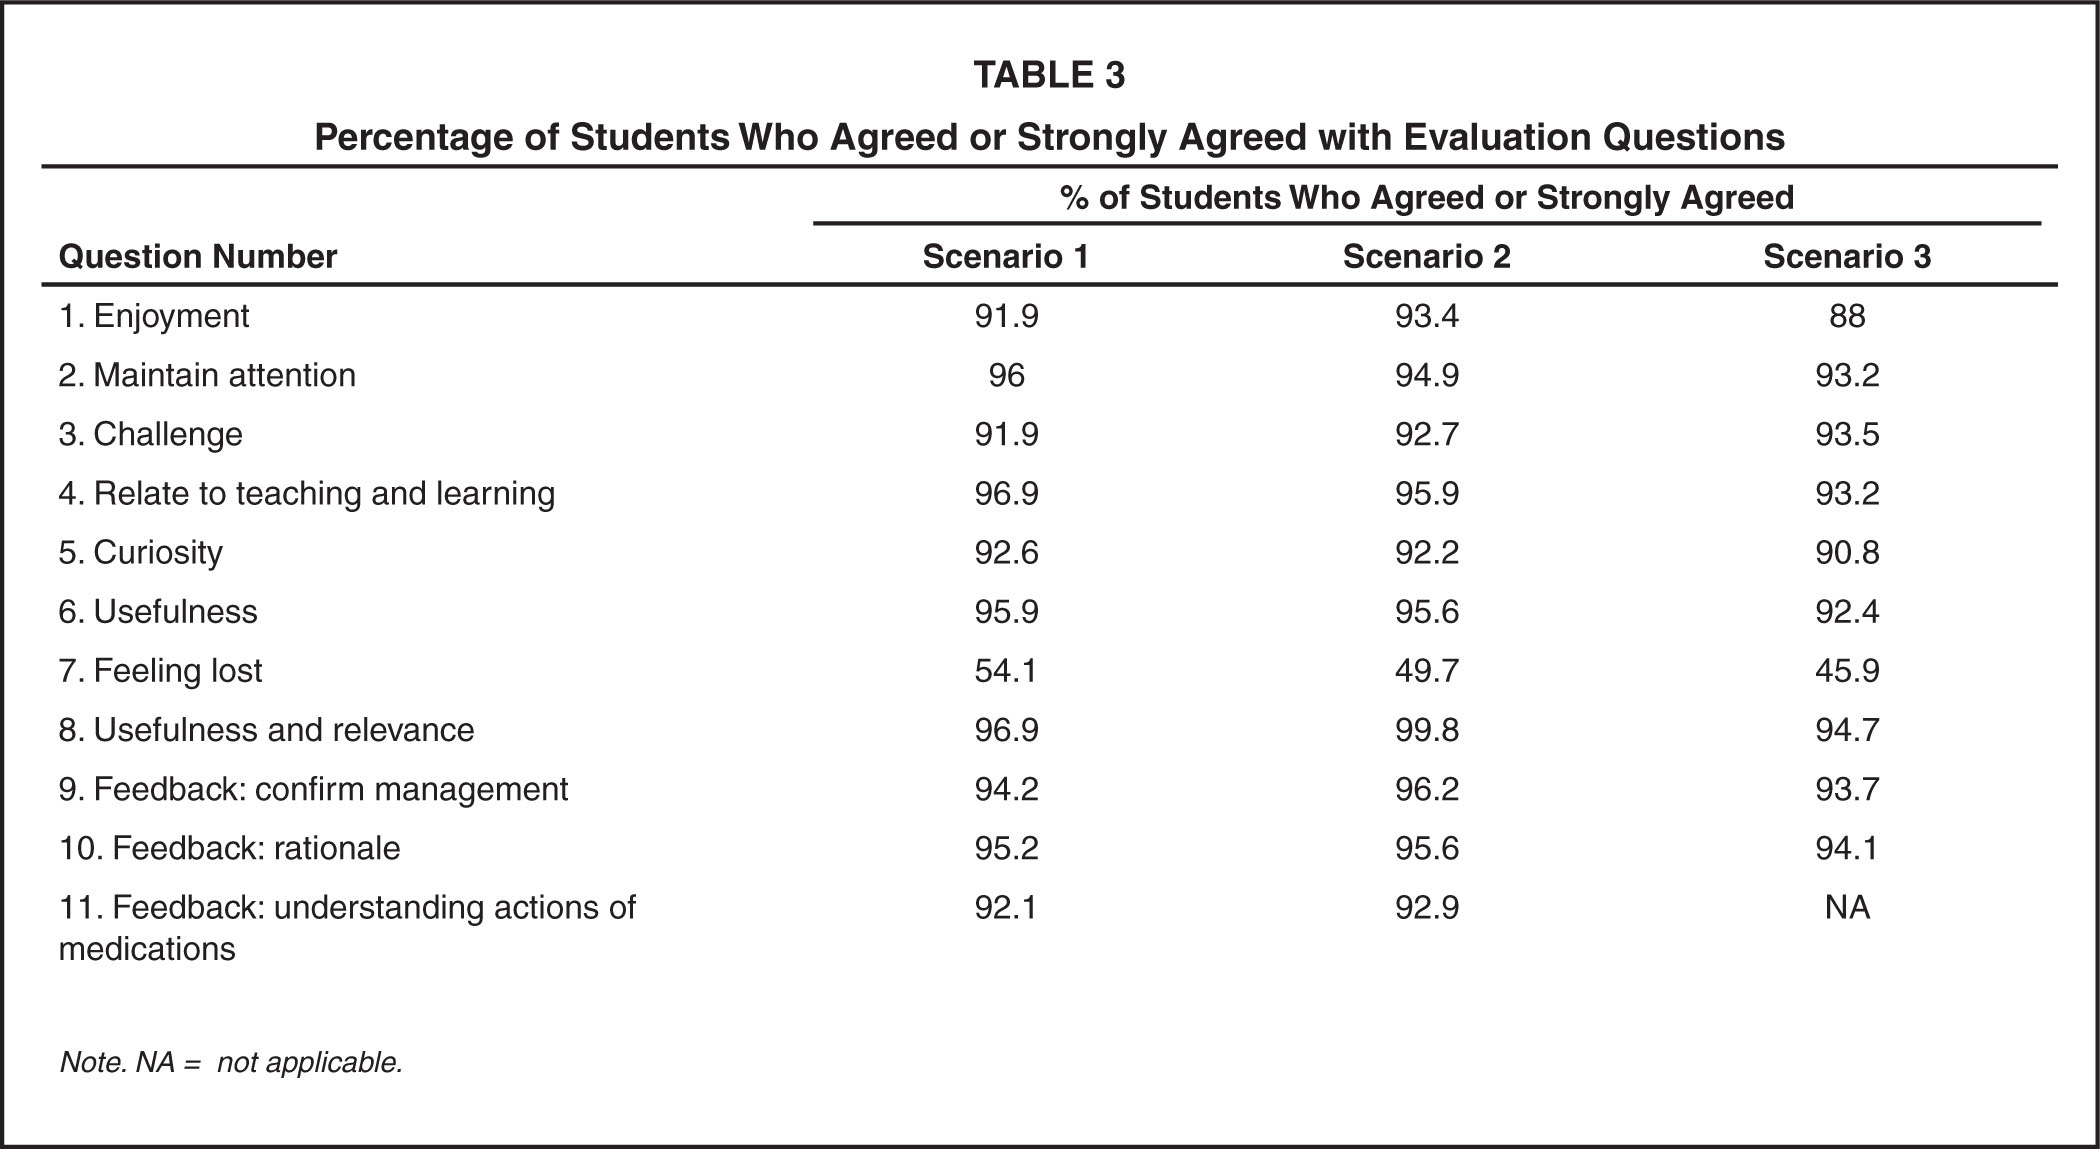 Percentage of Students Who Agreed or Strongly Agreed with Evaluation Questions